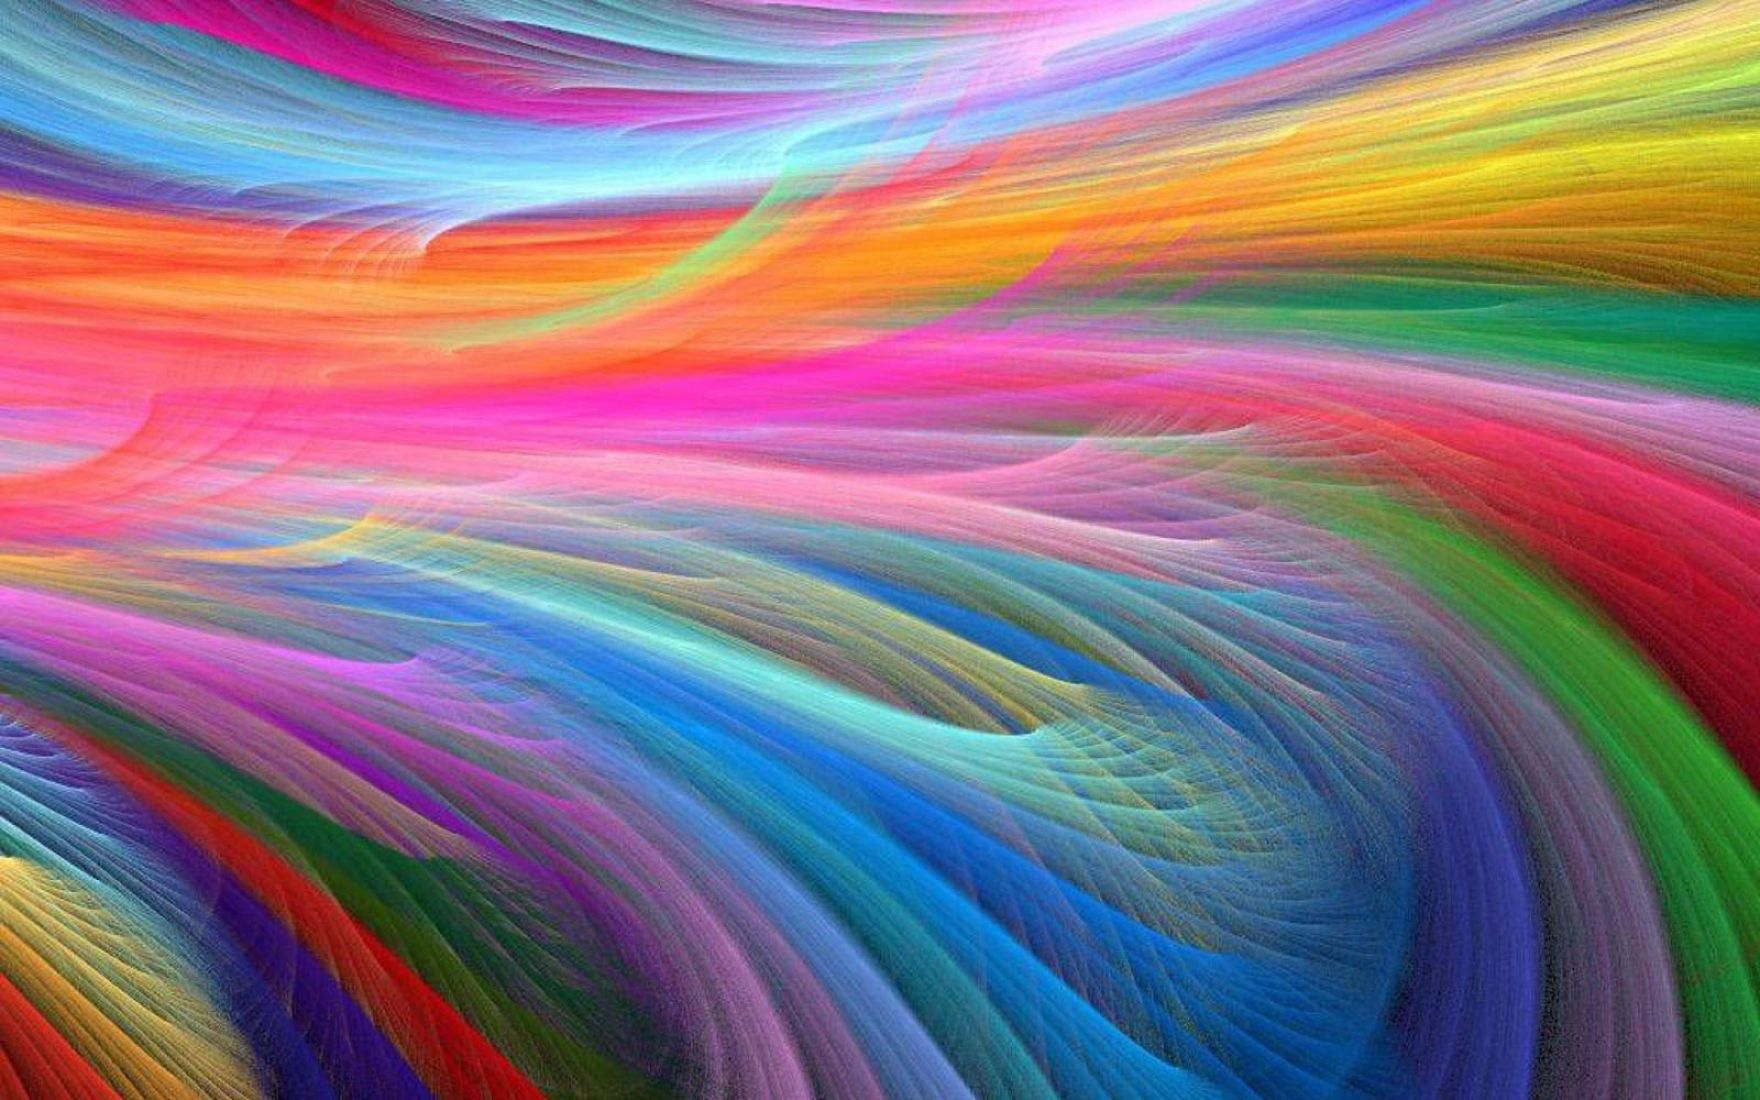 colorful abstract art desktop wallpaper: desktop hd wallpaper